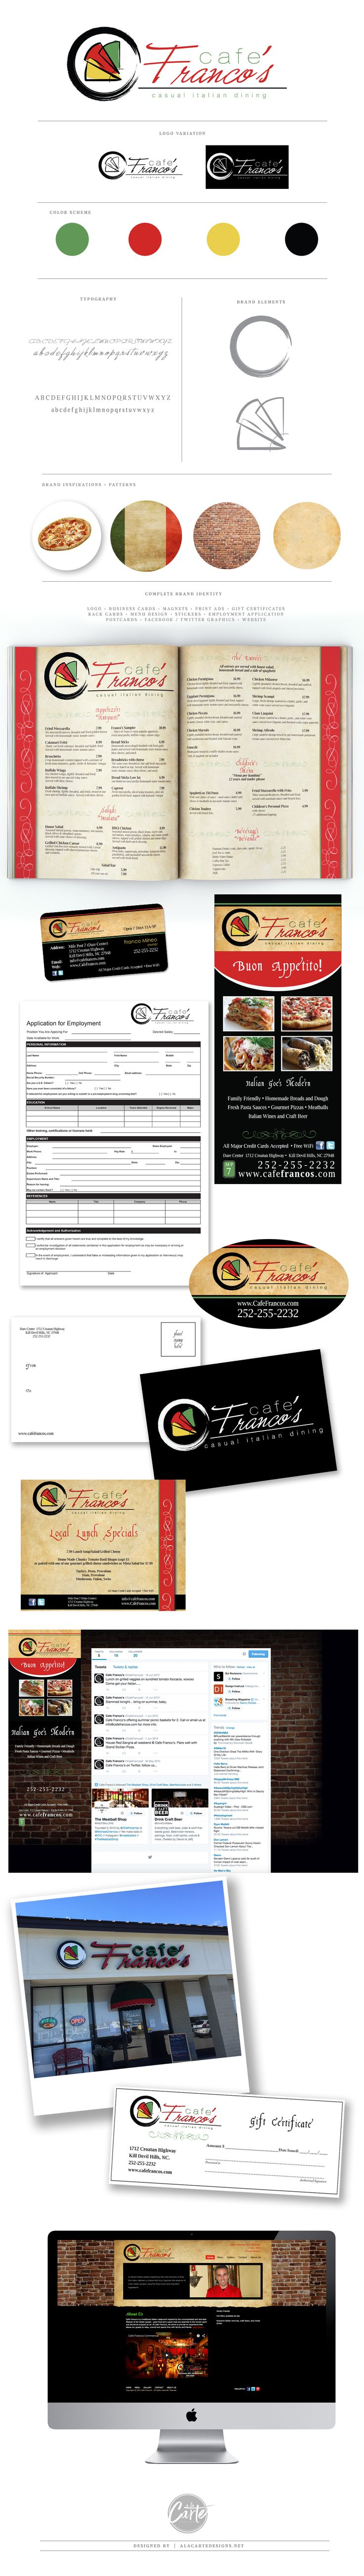 Full branding created for Cafe Franco's located in the Outer Banks of NC Logo + Business Cards + Magnets + Print Ads + Gift Certificates + Rack Cards + Menu Design + Stickers + Employment Application + Postcards + Facebook / Twitter Graphics + Website       by www.alacartedesigns.net